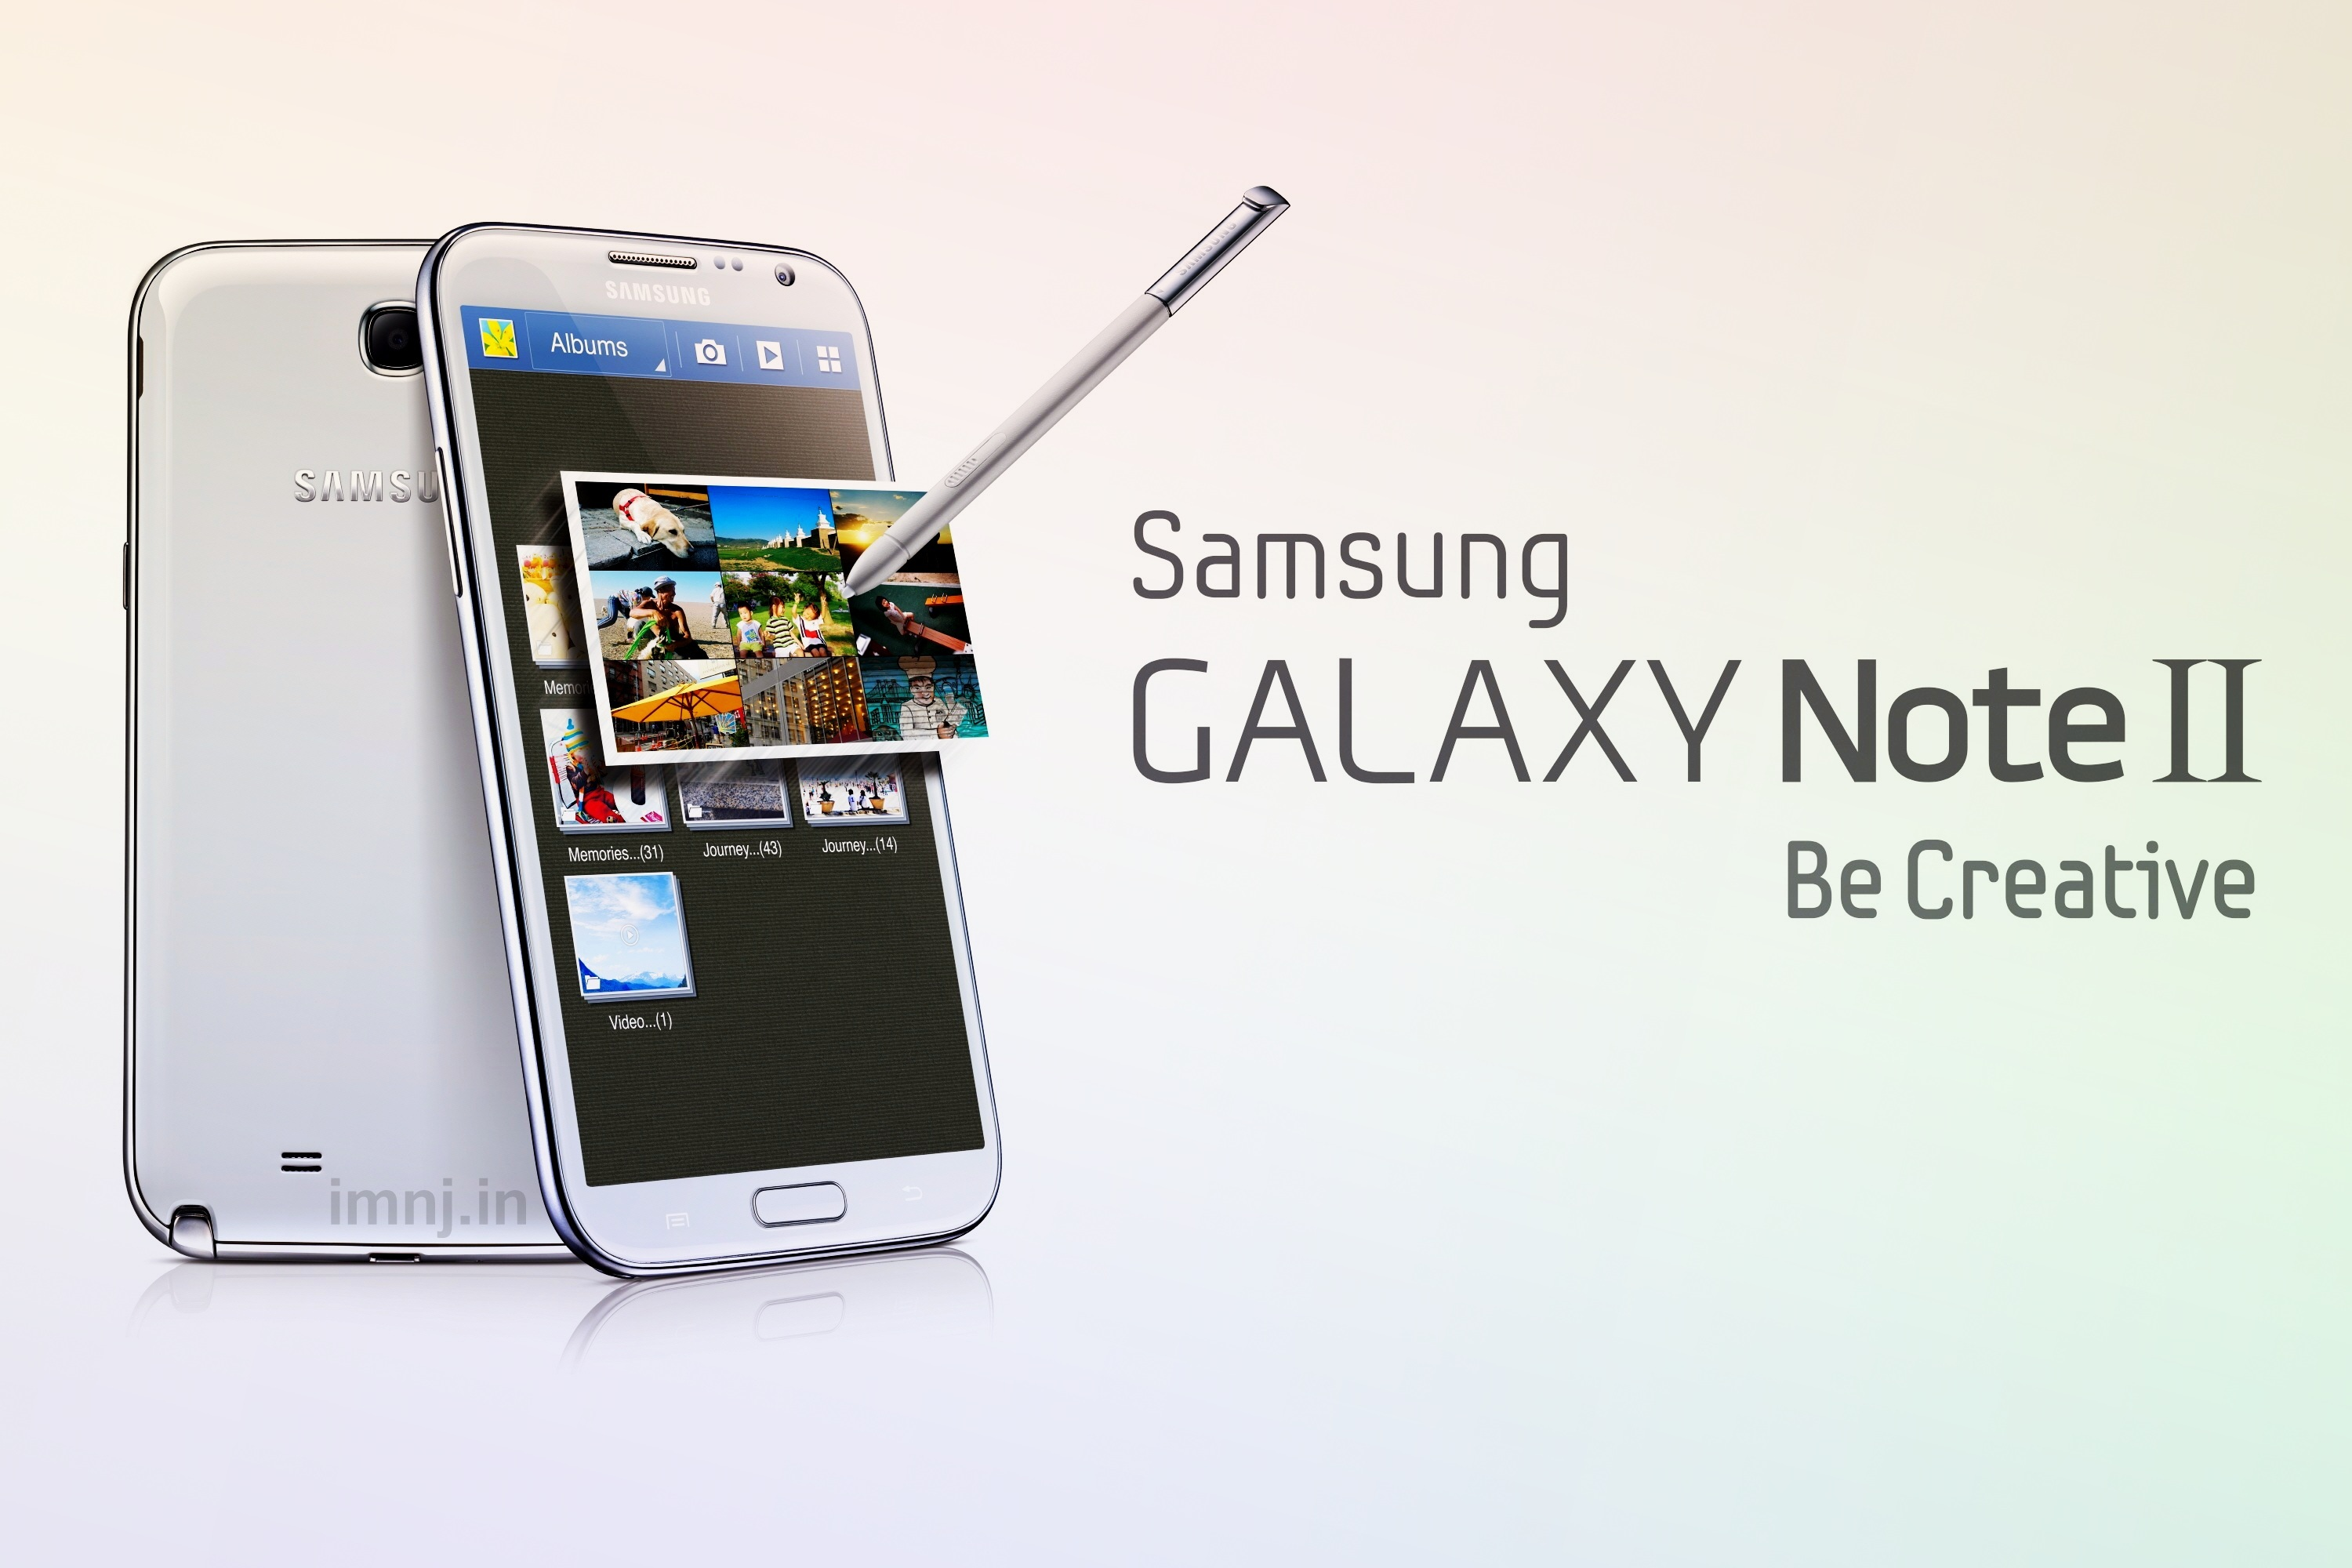 Galaxy Note II, Note 3, S4 and more to get Android 5 0 Lollipop soon